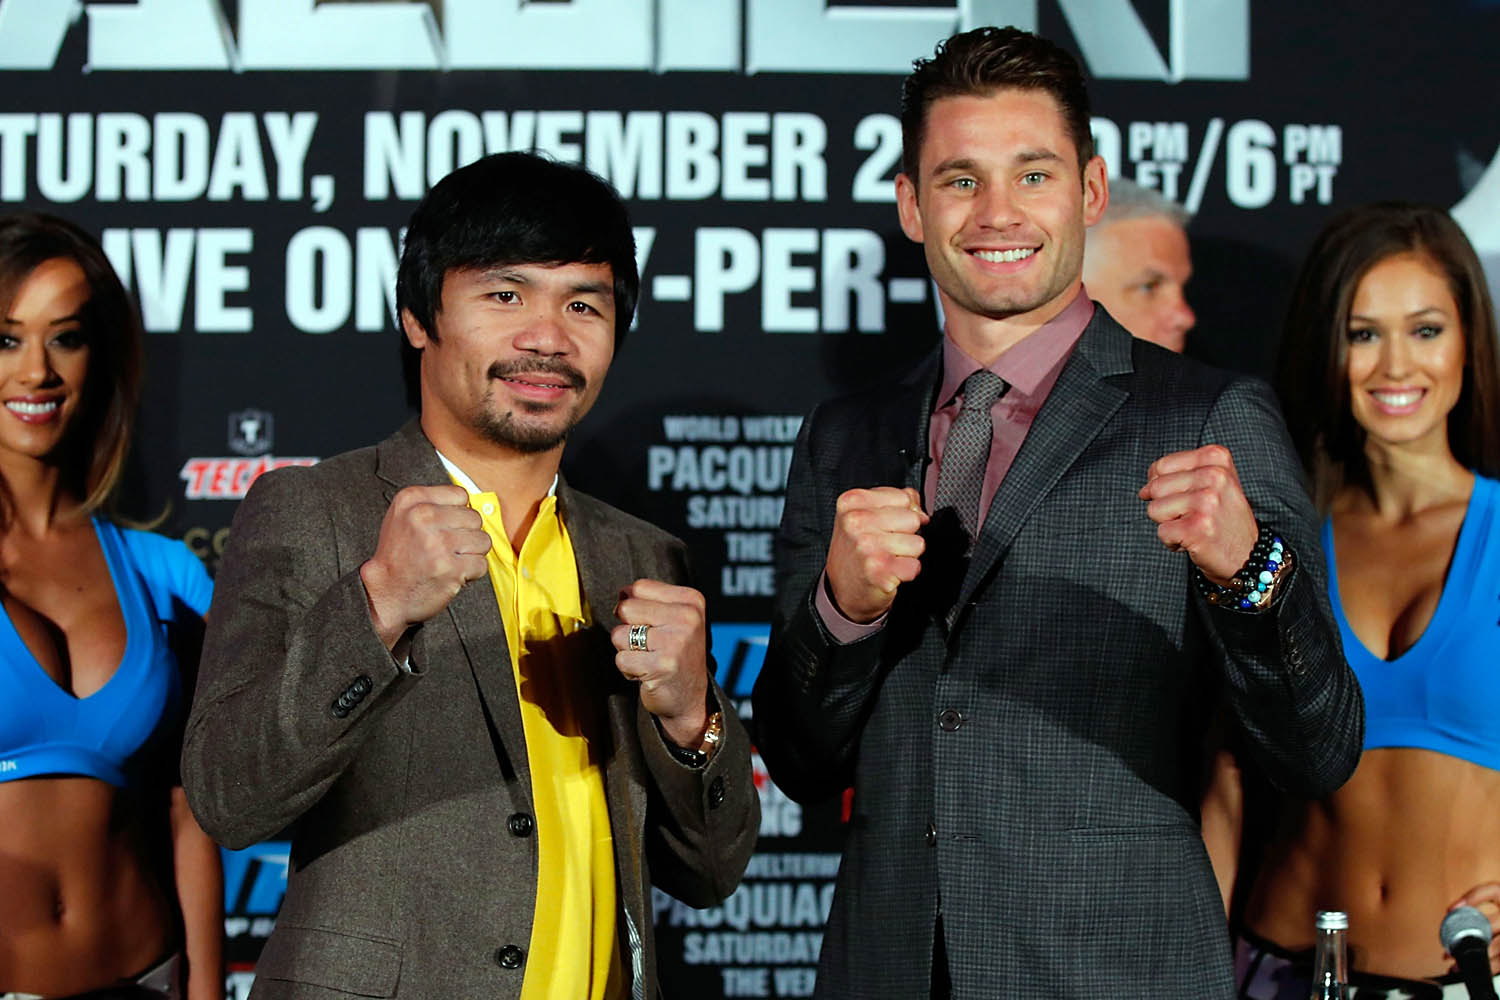 Watch Pacquiao-Algieri Fight via BLINK App